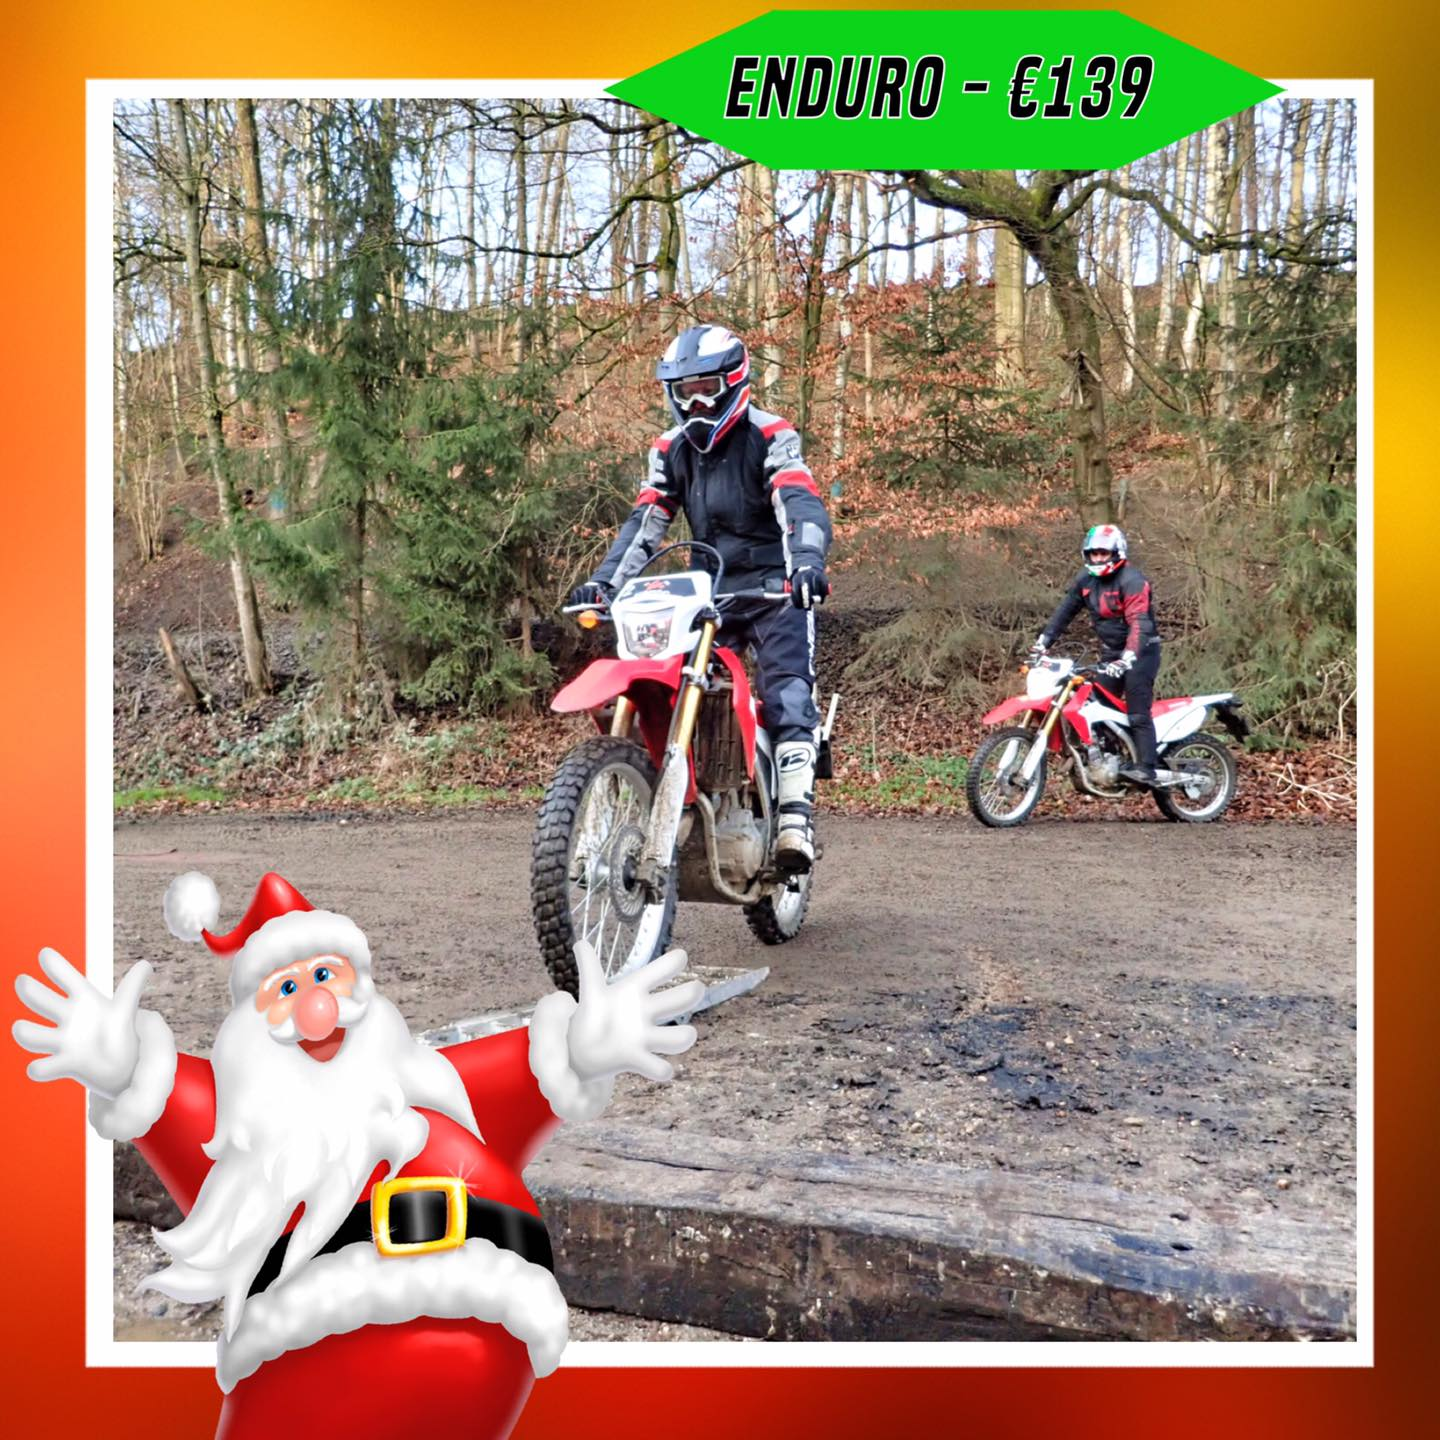 Kerst-initiaties Bilstain Endurofun 11